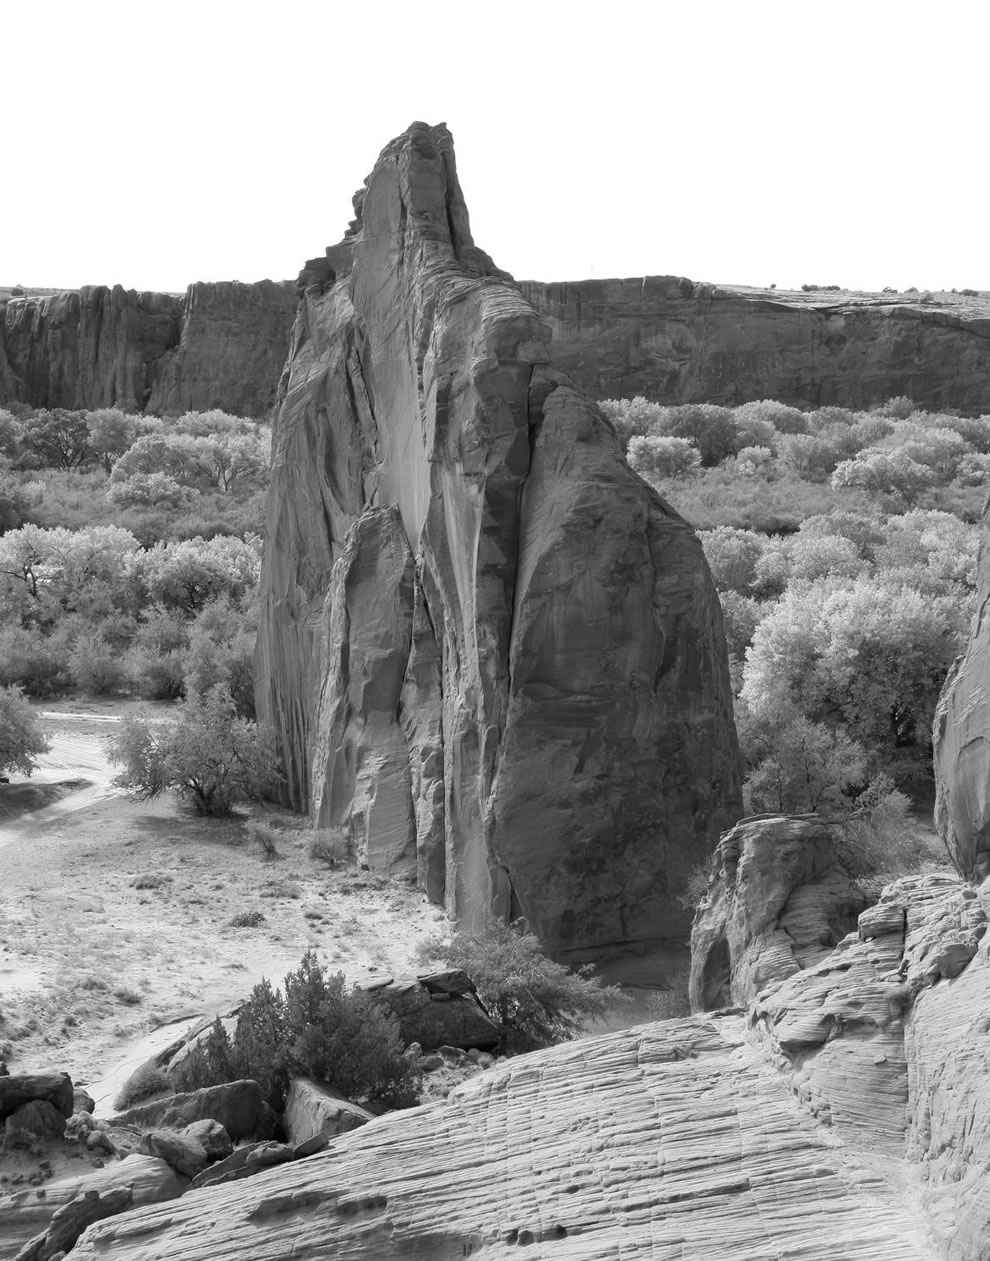 view of Petroglyph Rock area at Canyon de Chelly